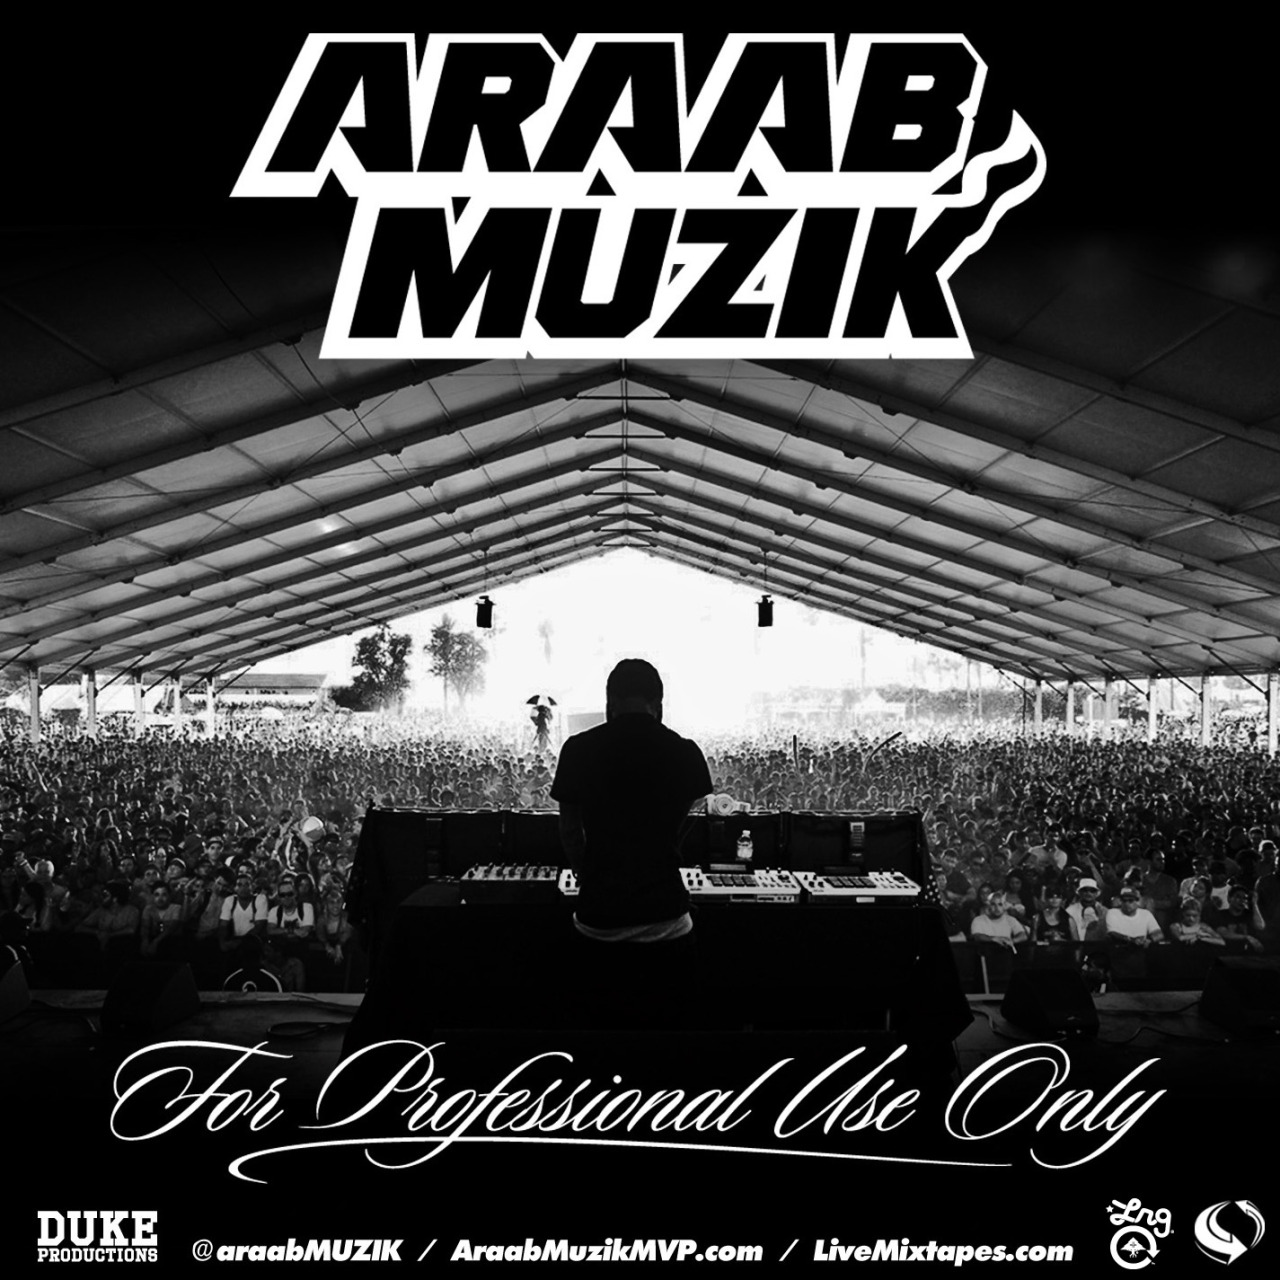 This morning, AraabMuziK dropped his highly anticipated mixtape: For Professional Use Only.  You can stream/download the entire mixtape for free below.